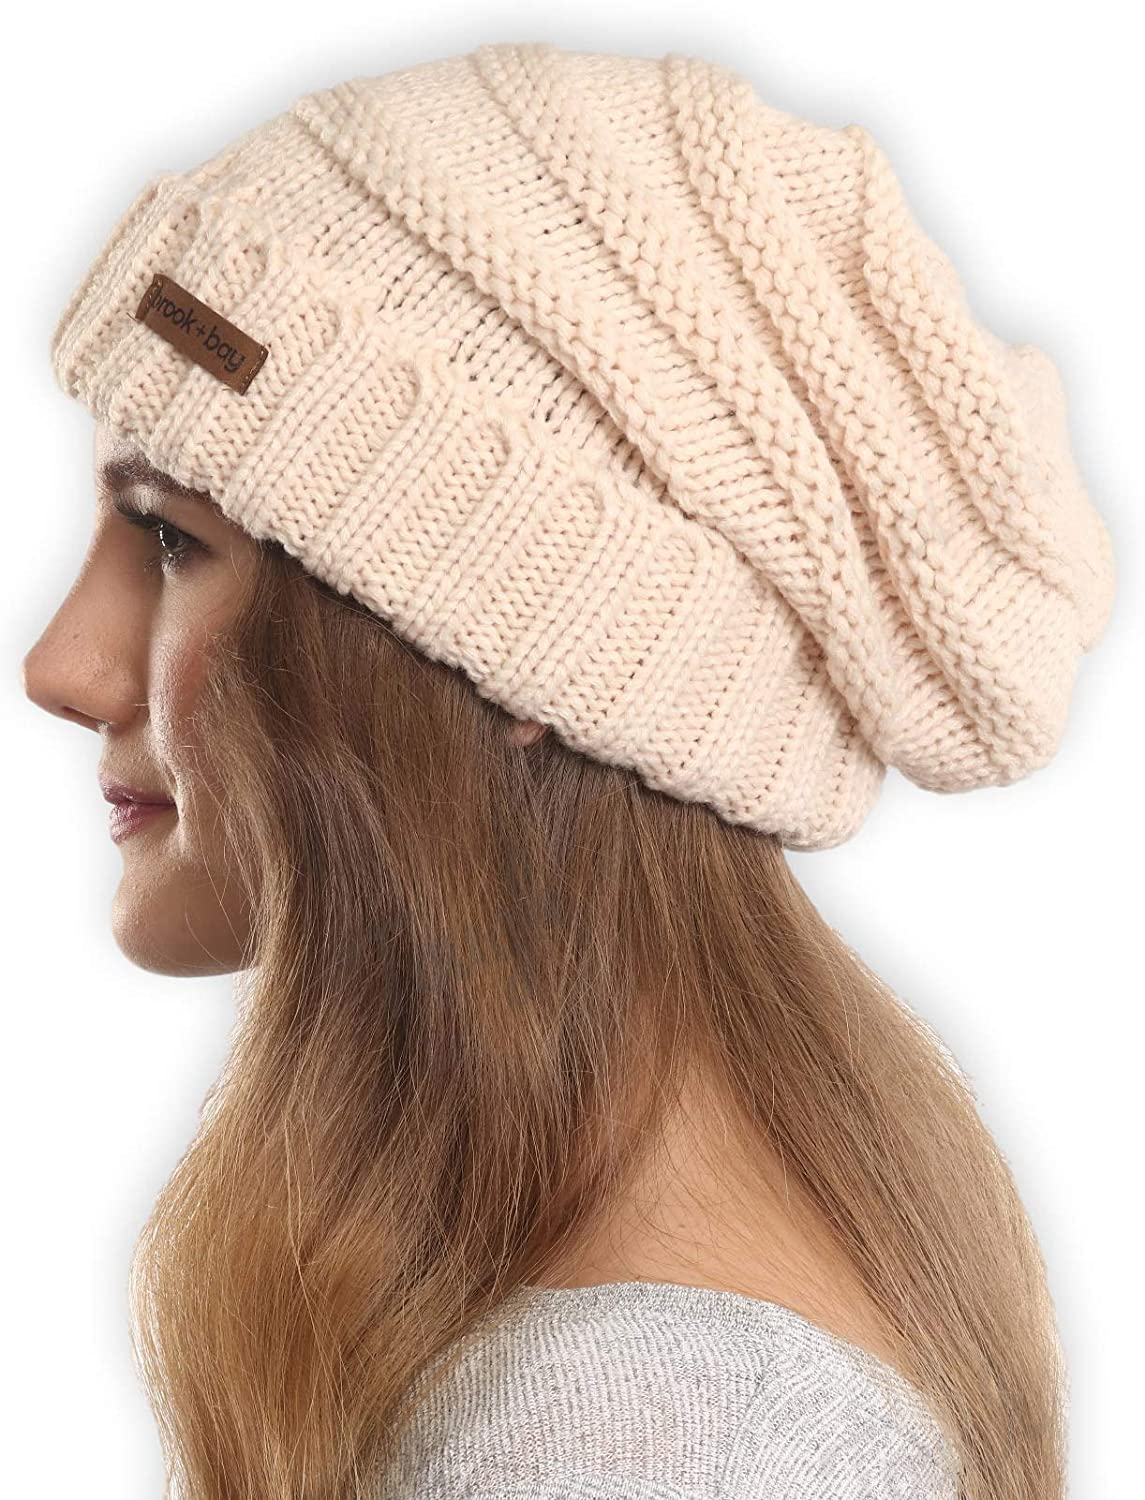 0264384633b Brook + Bay Slouchy Cable Knit Cuff Beanie - Stay Warm   Stylish - Chunky